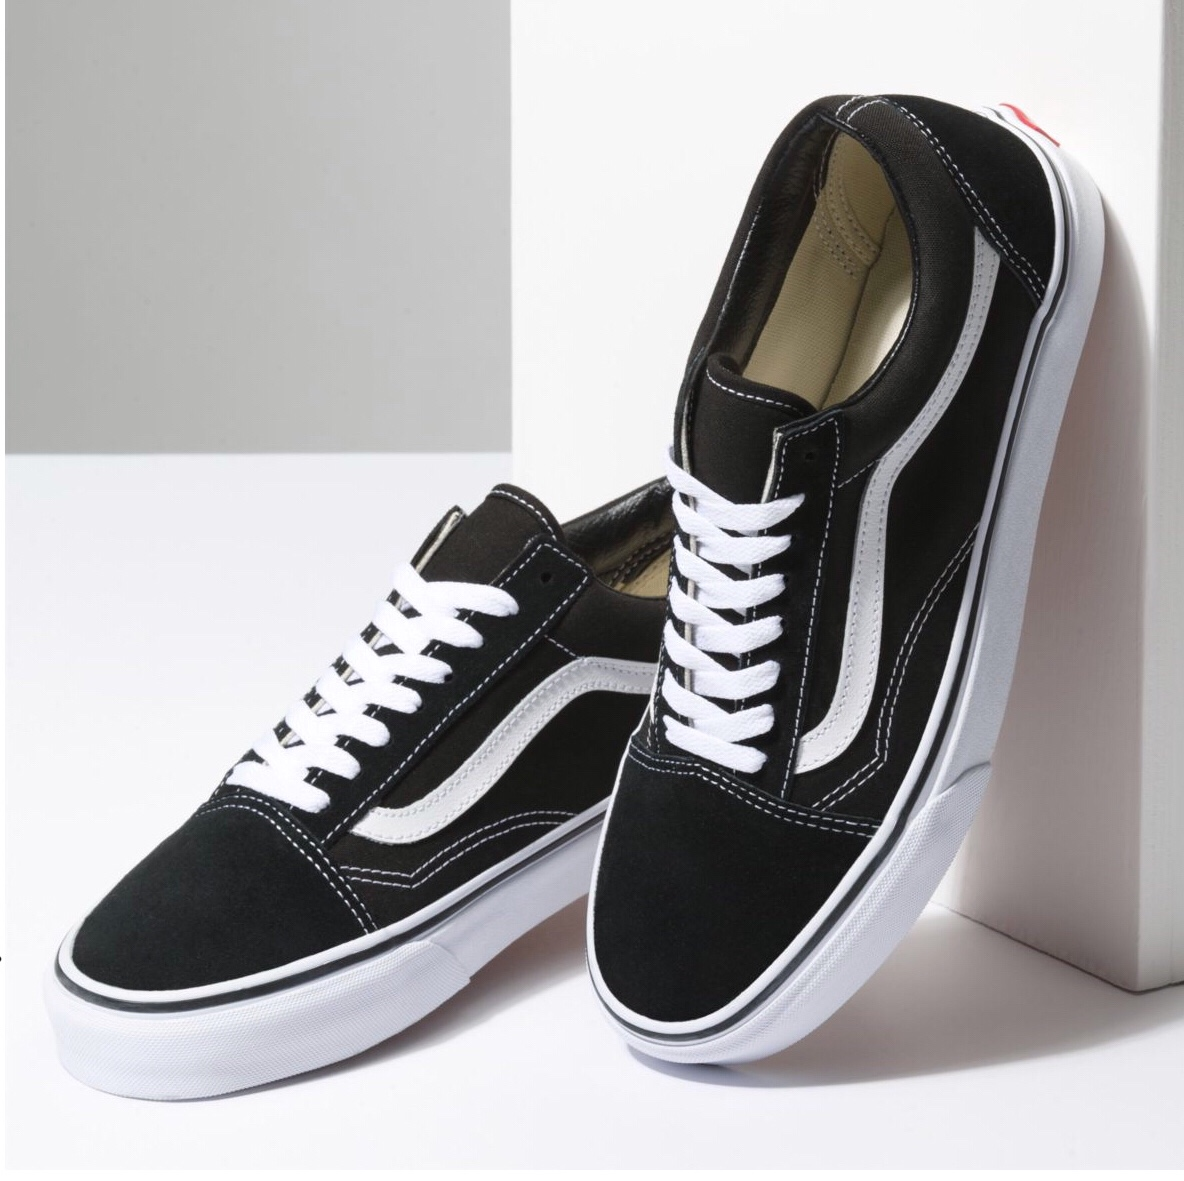 8a2edfcf62 These shoes are easy to style and easier on your bank account. Vans are an  all around classic shoe for back to school.